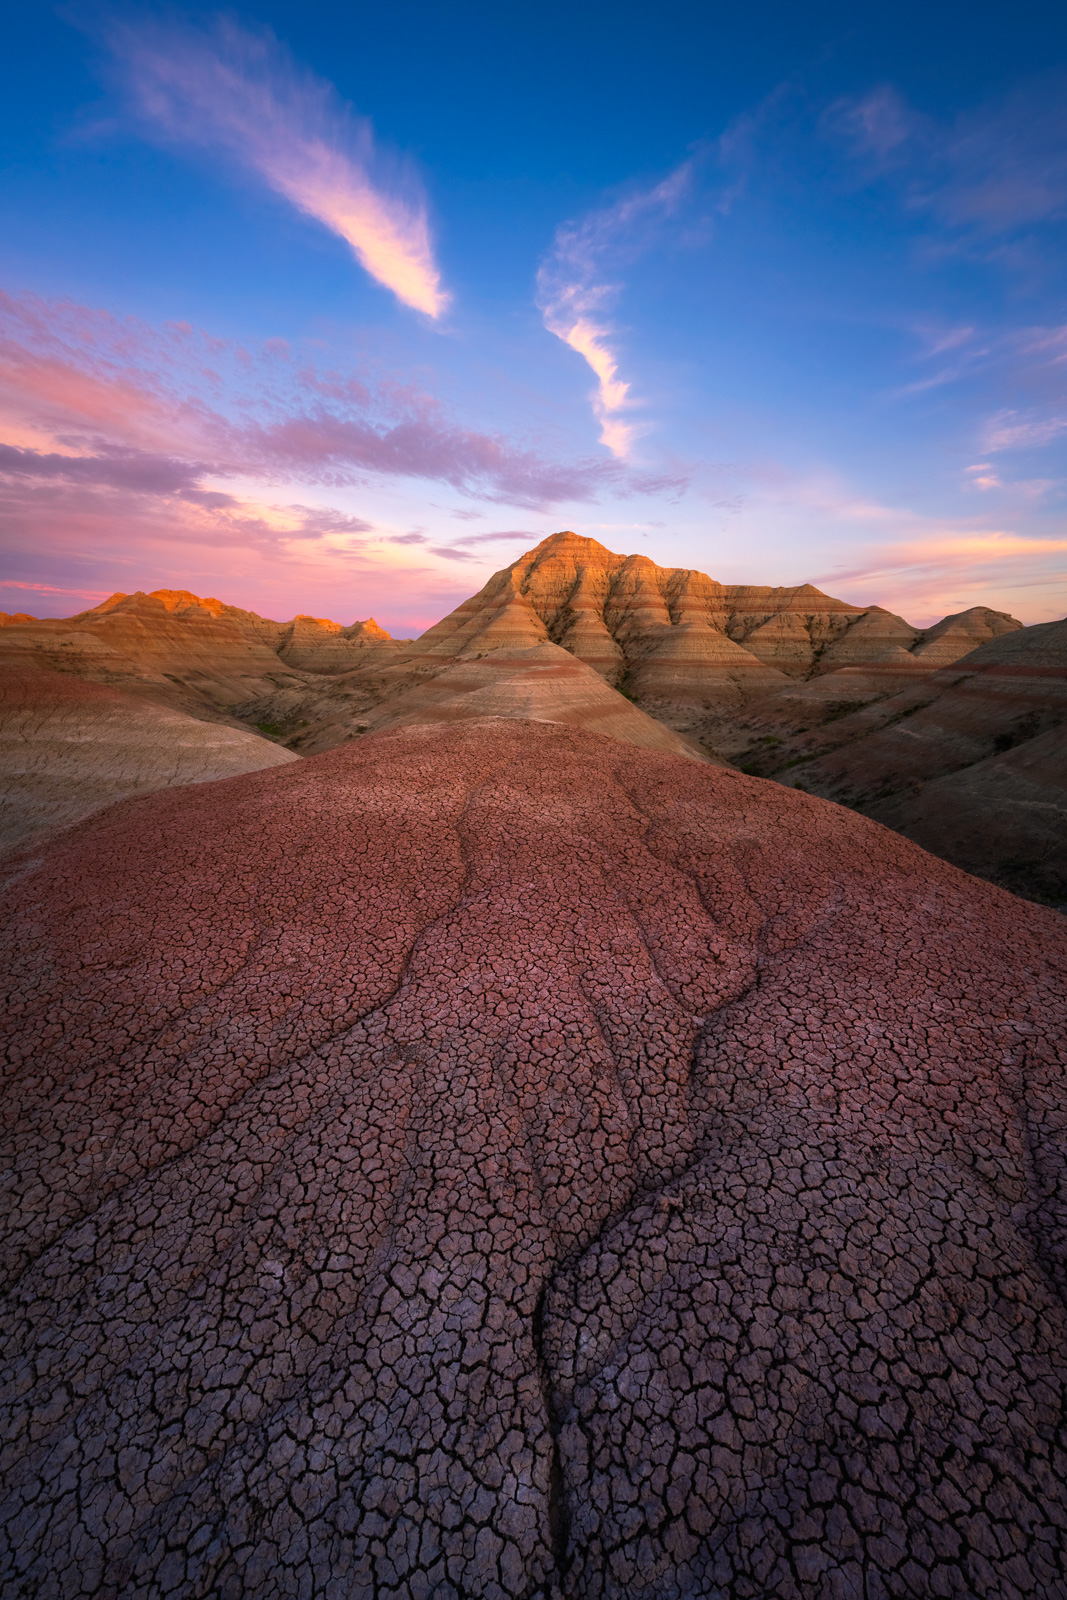 A remote landscape located in the backcountry of Badlands National Park at sunset.